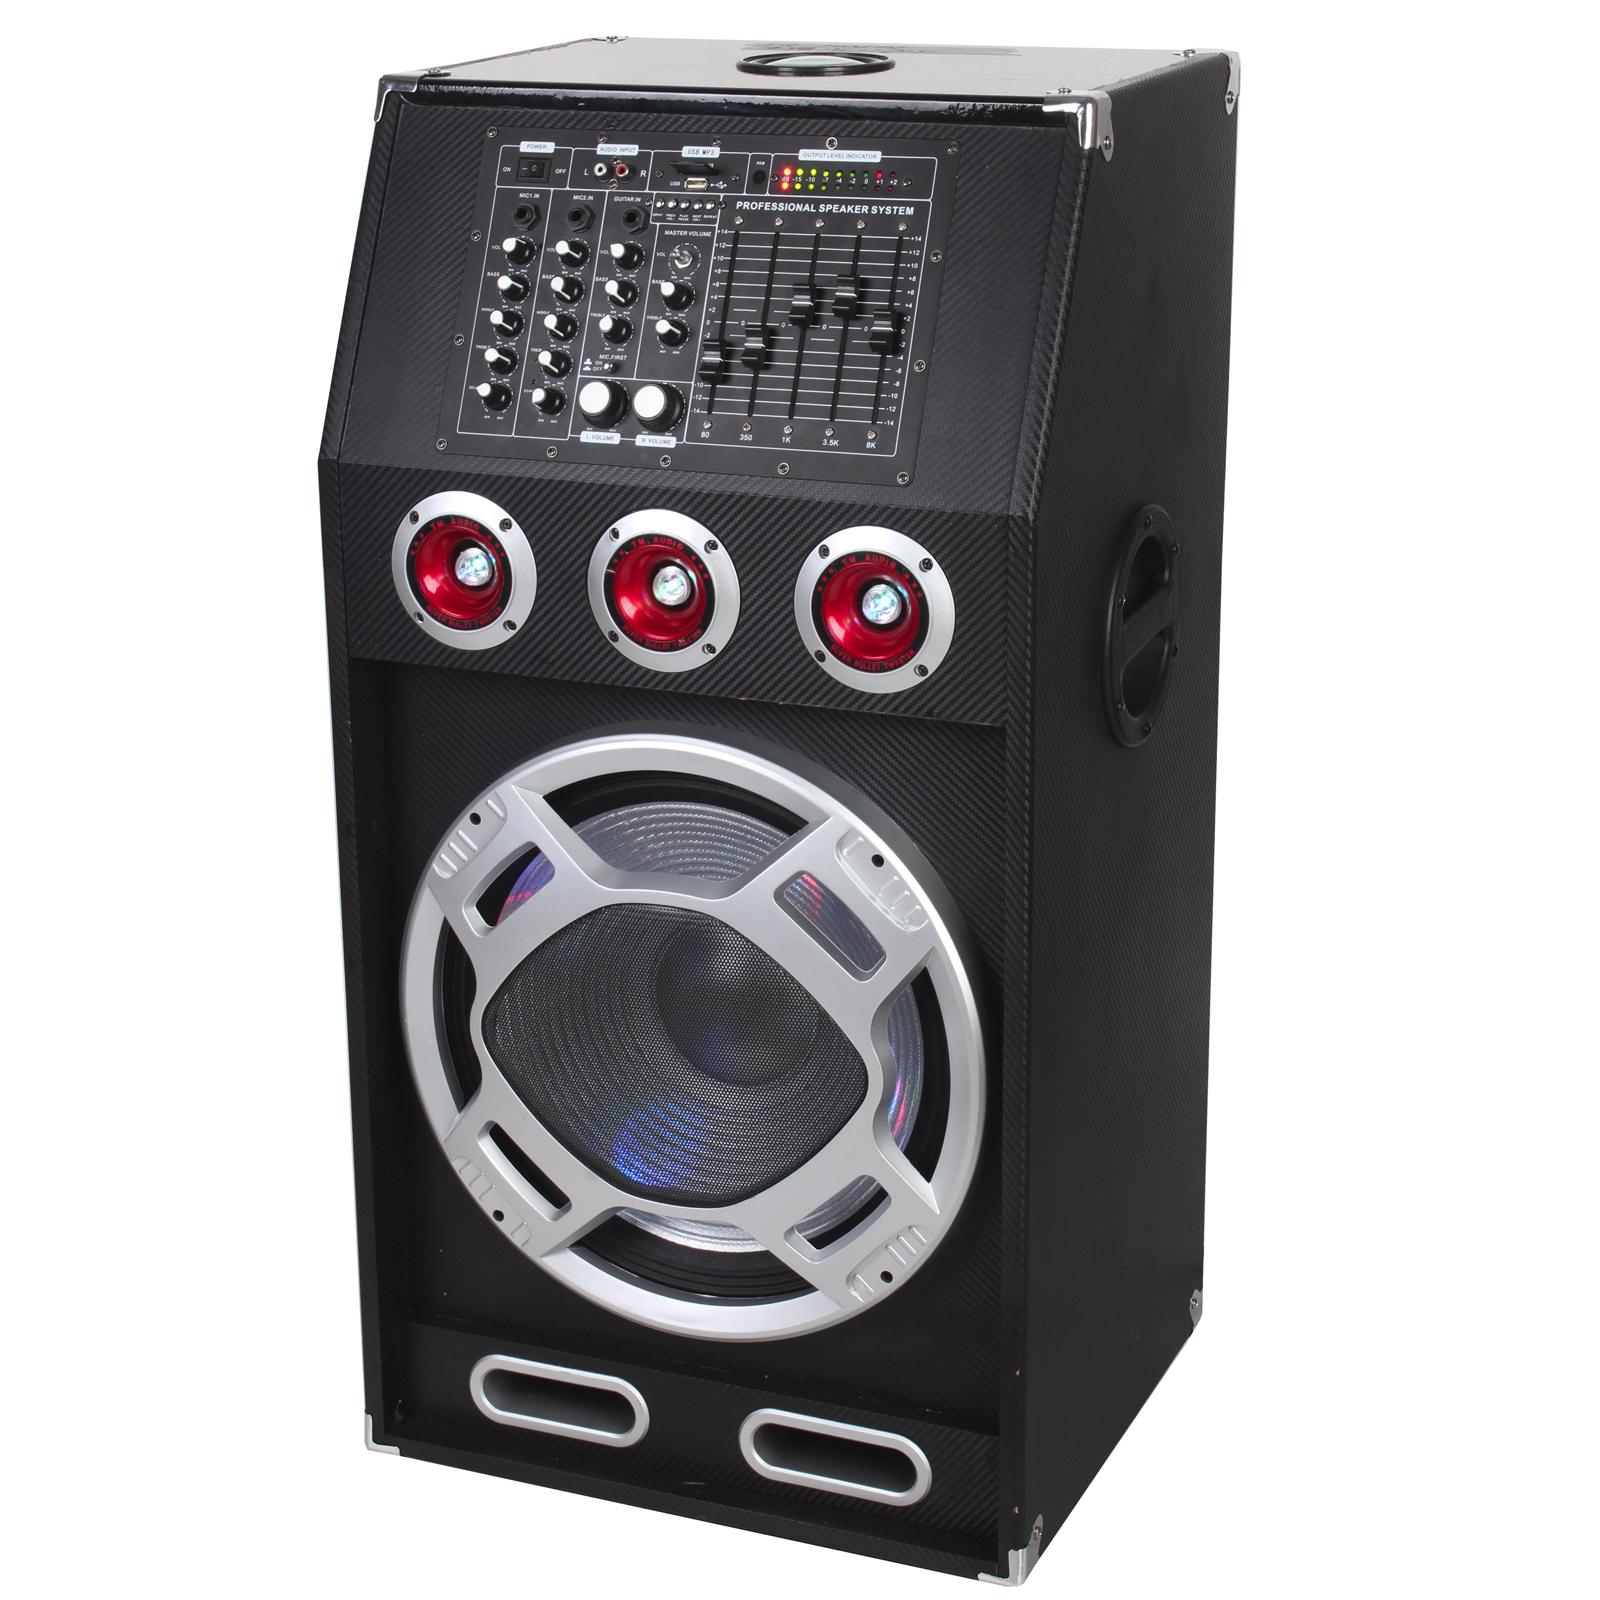 "Supersonic 15"" Professional Active Speaker with Bluetooth, USB/SD/MIC Inputs and FM Radio"